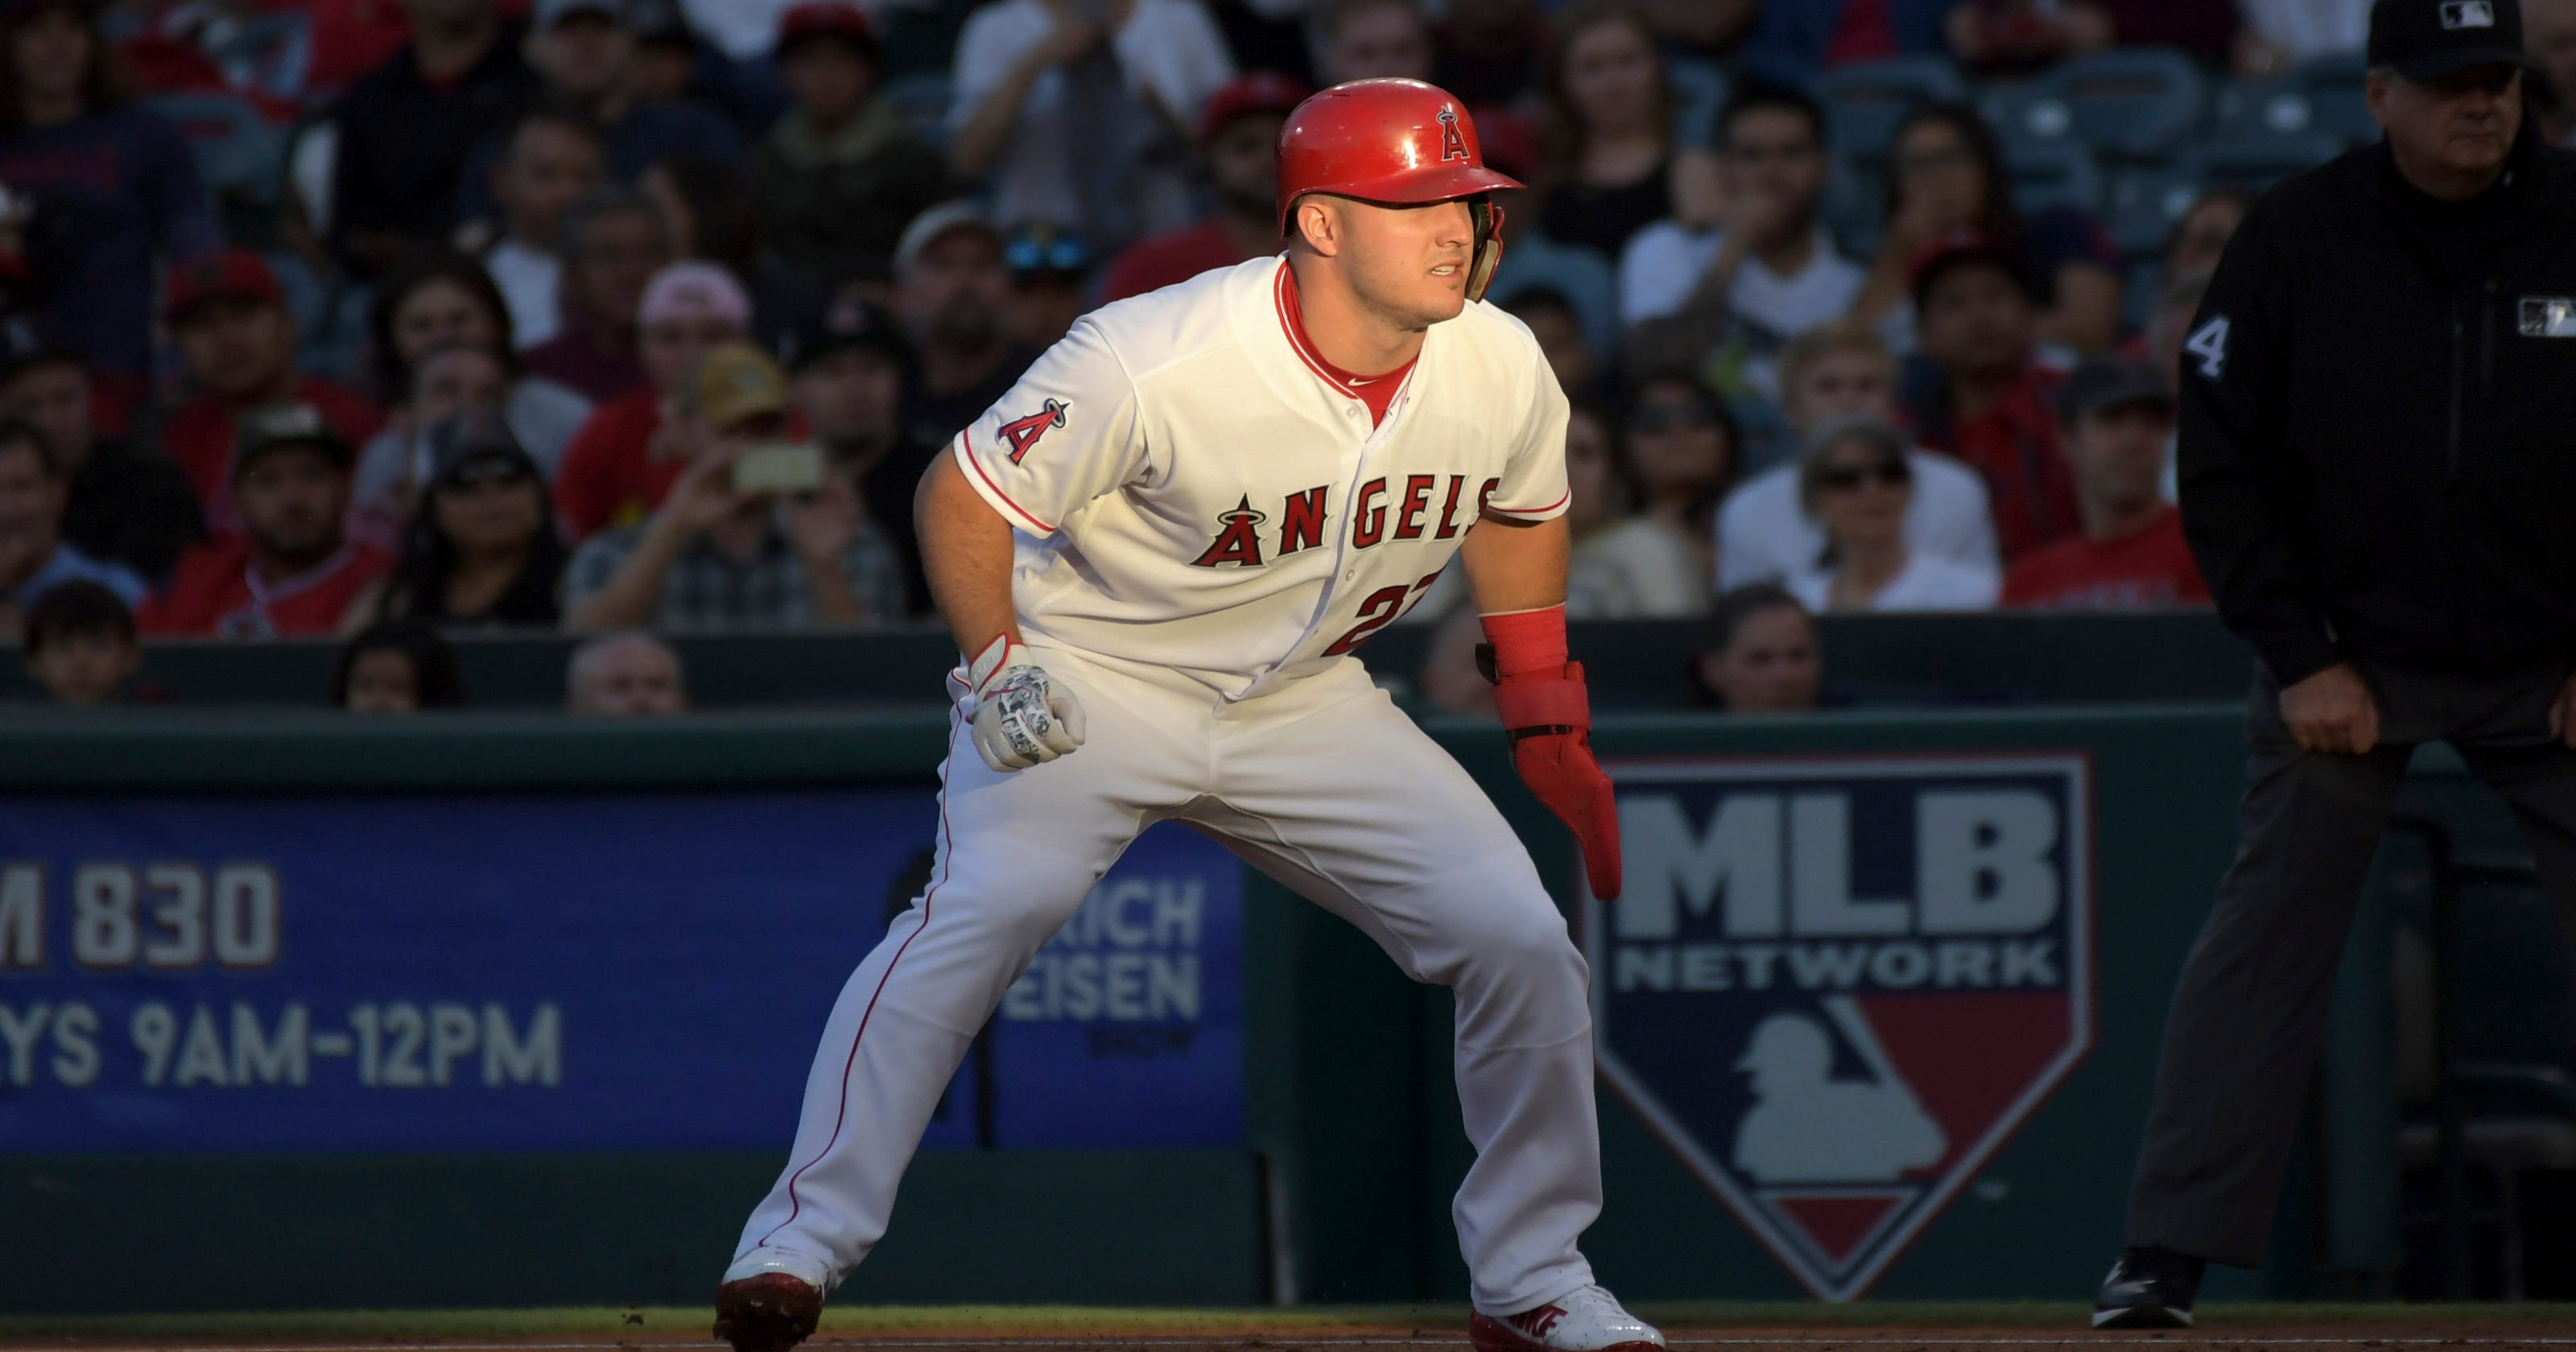 Mike Trout: Bound for a third MVP season as Angels fade in standings